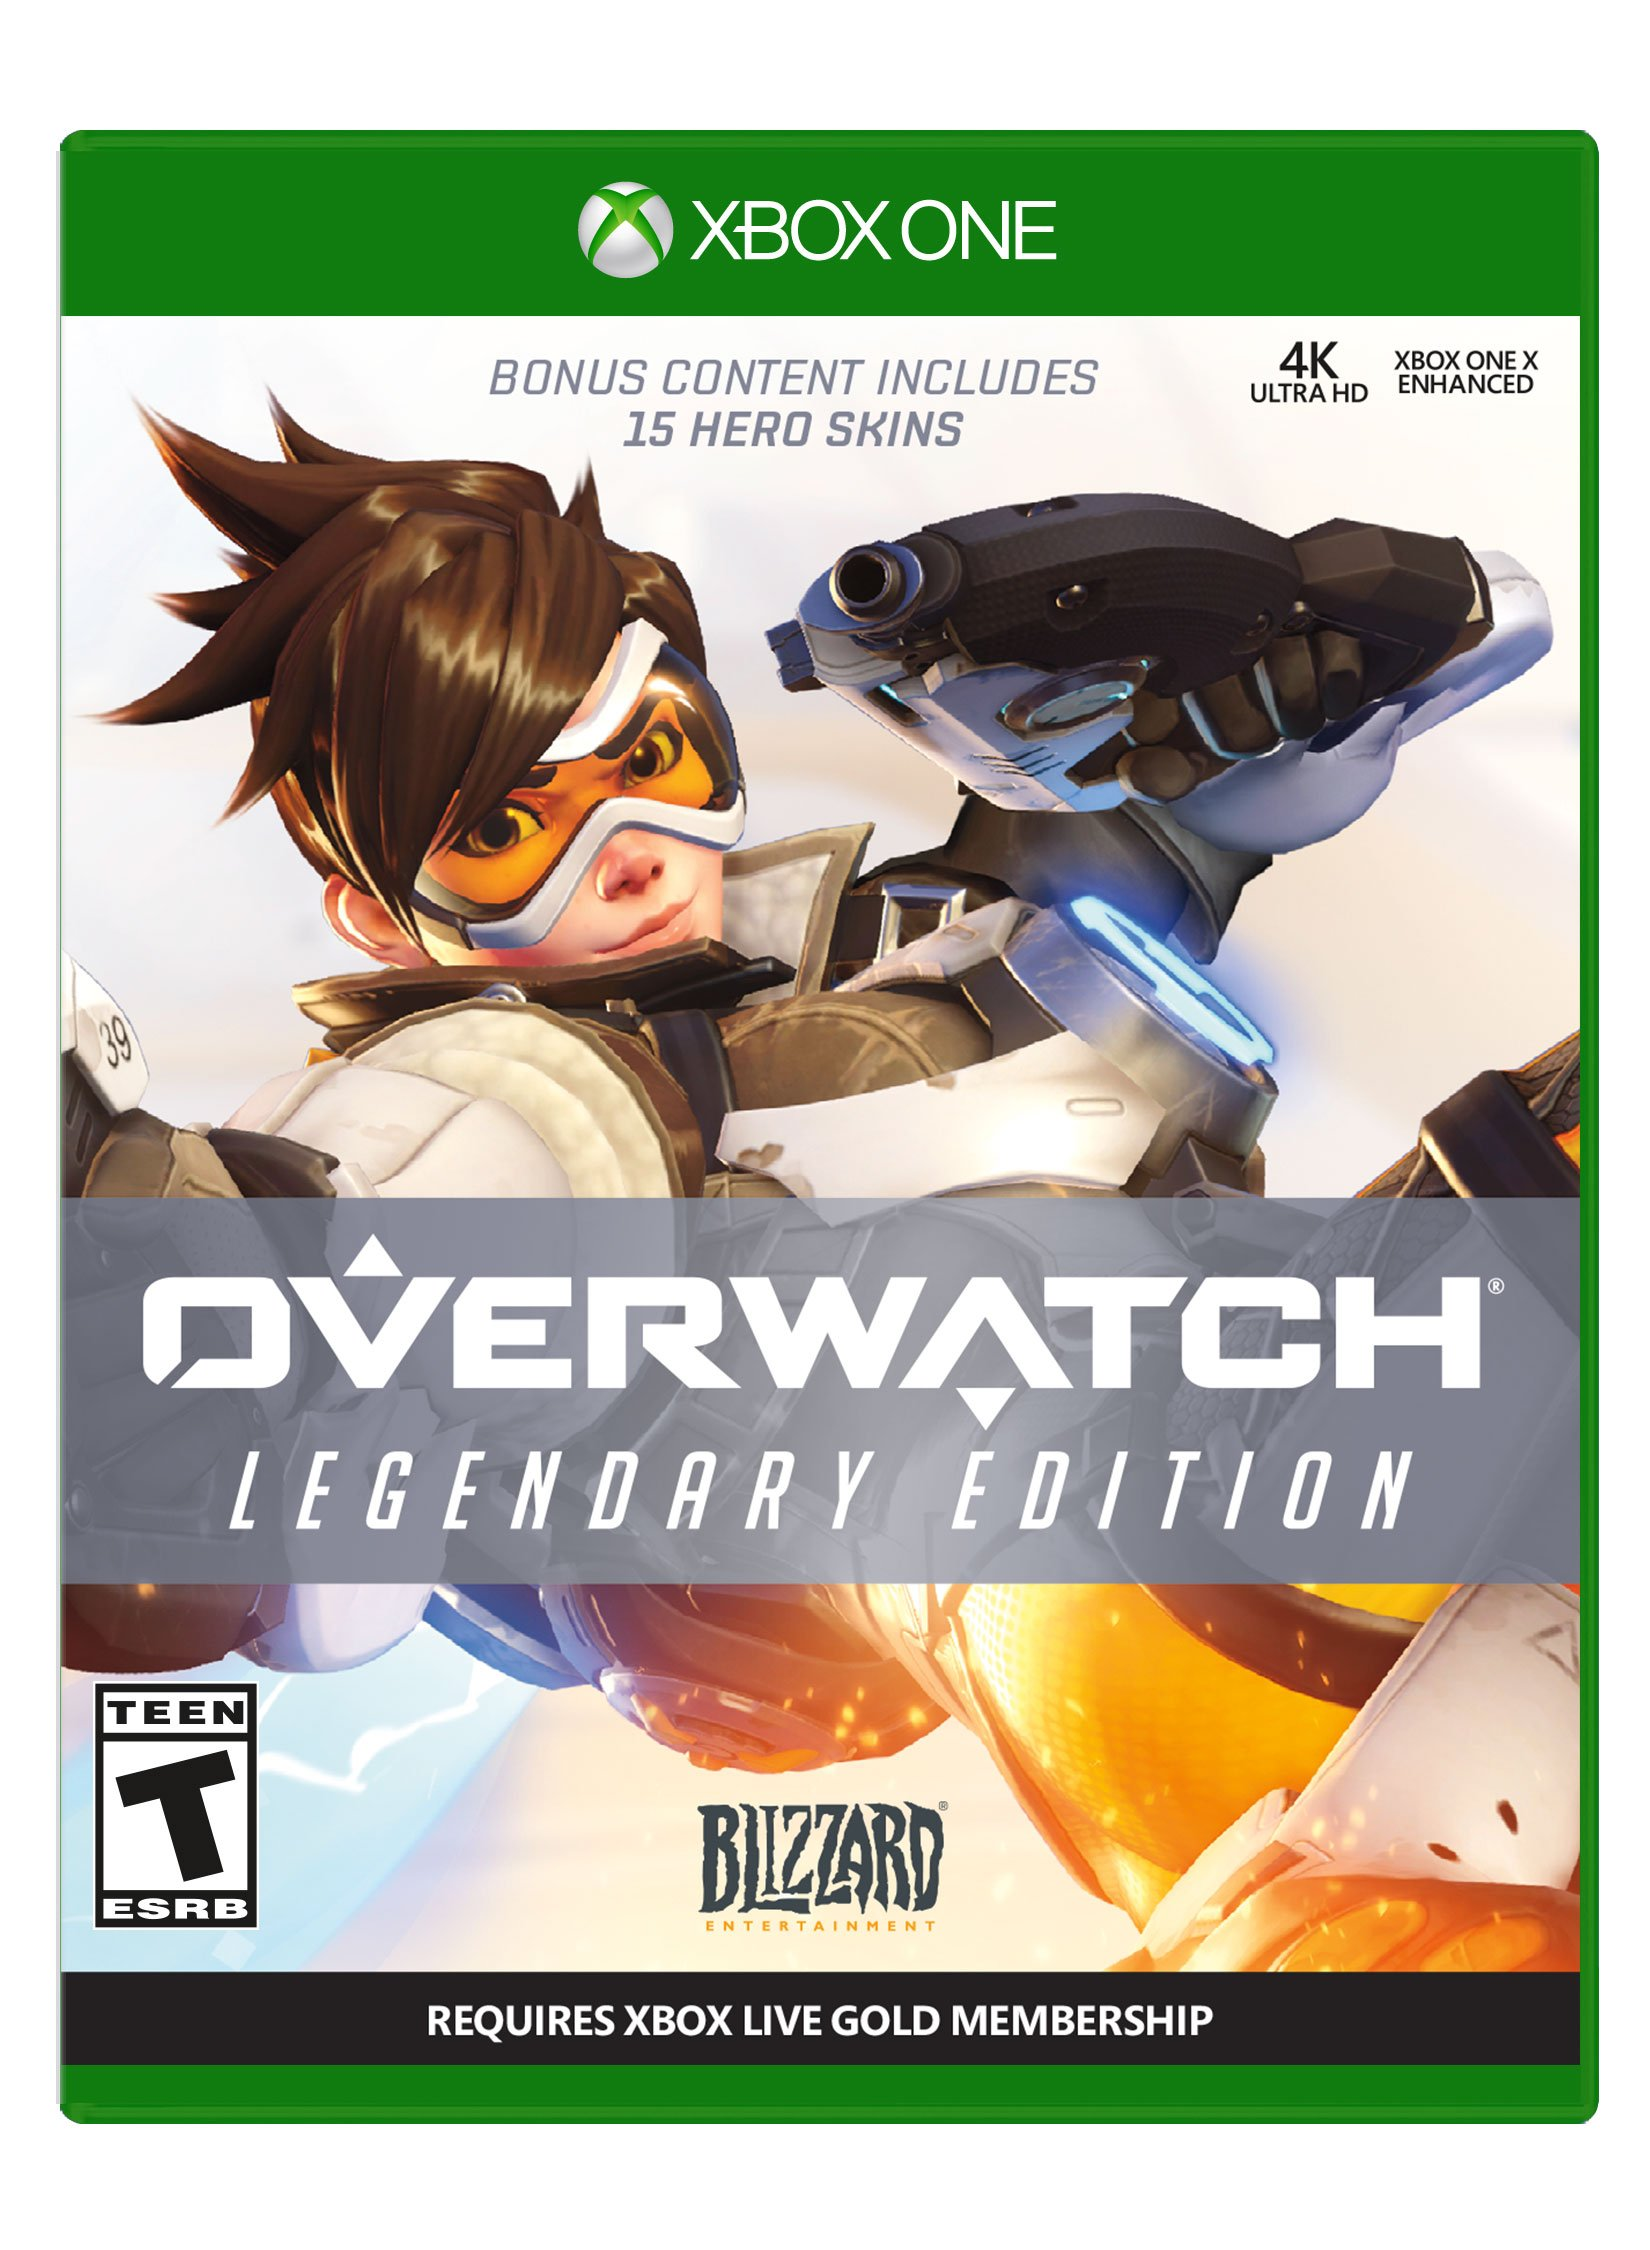 Overwatch Legendary Edition - Xbox One by Blizzard Entertainment (Image #8)